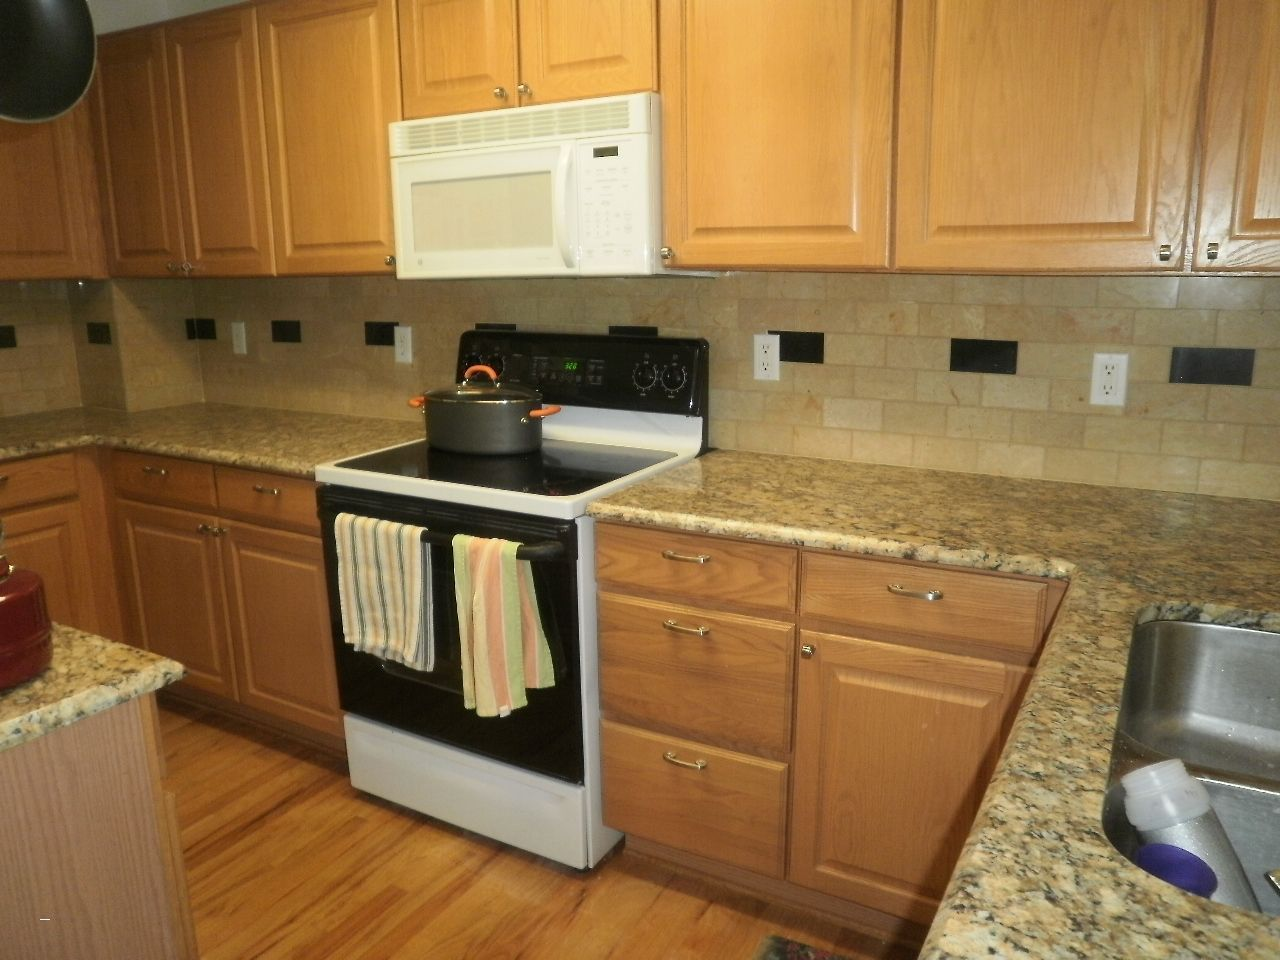 Kitchen Backsplash With Oak Cabinets Amazing Golden Oak Cabinets With White Appliances Giallo Ornamental Granite Backsplash Marble Backsplash